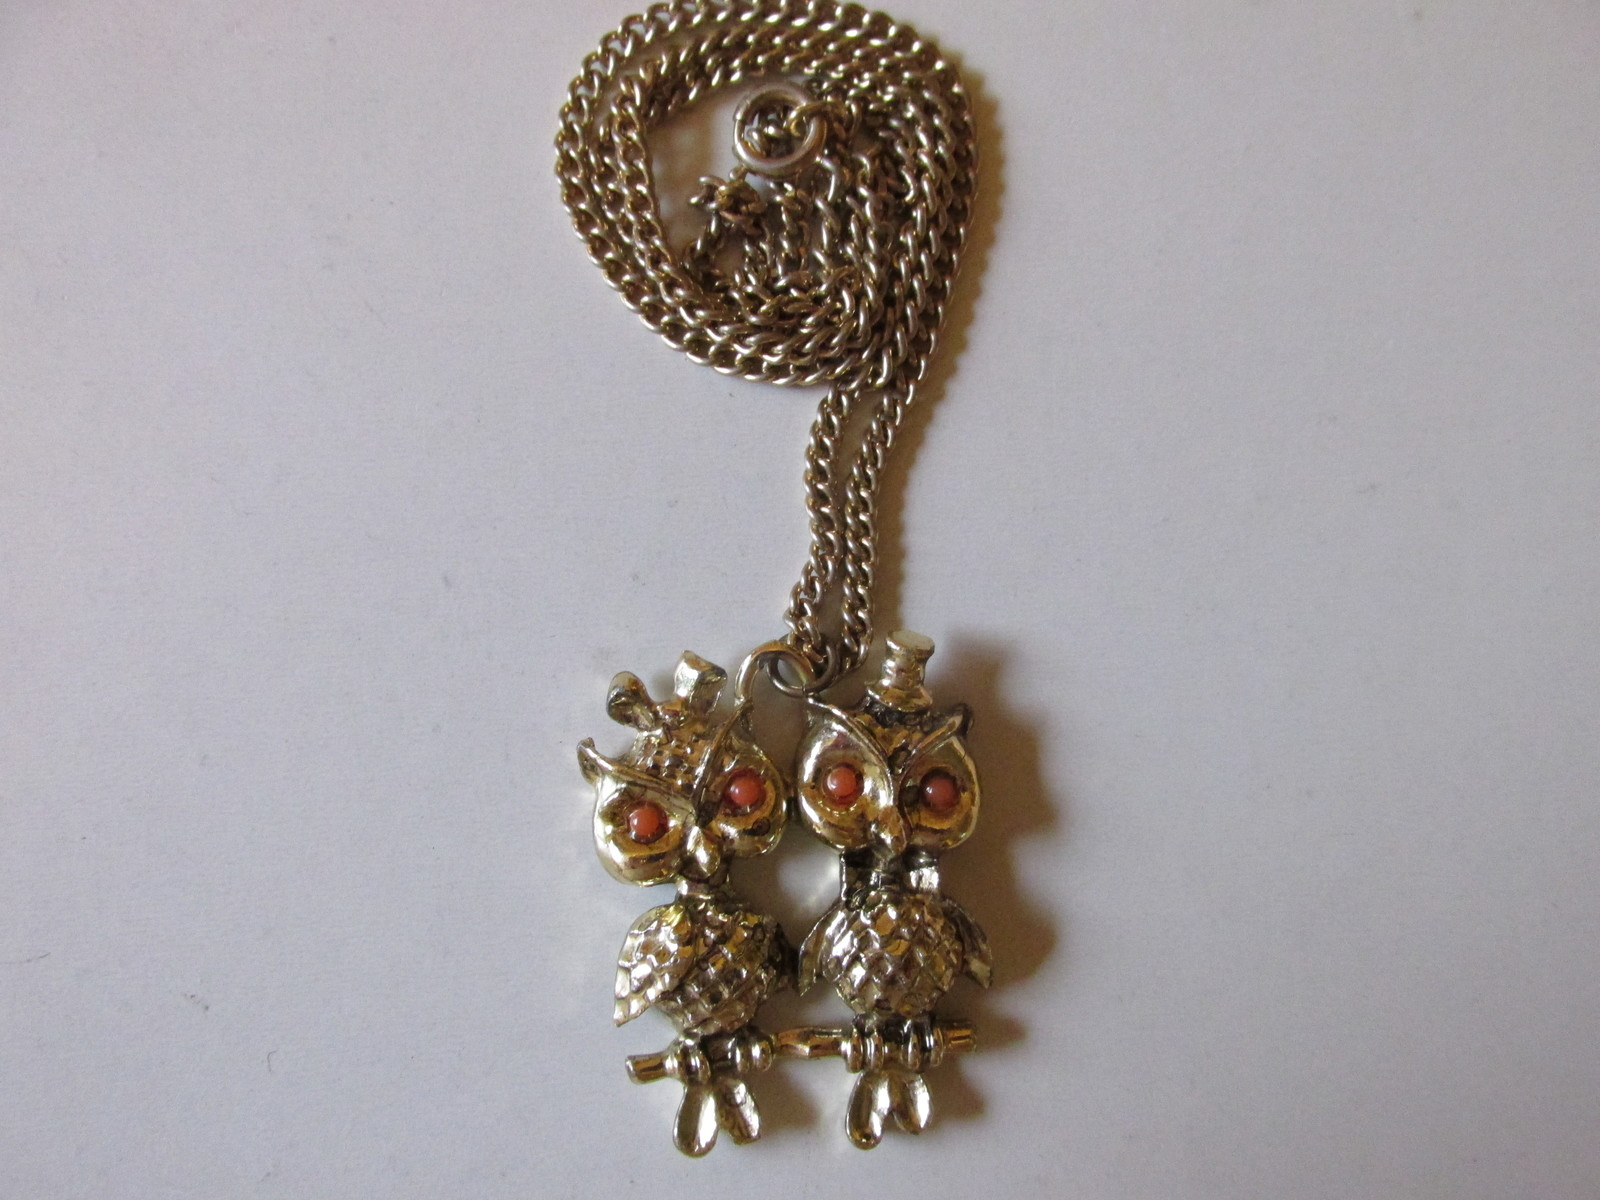 Retro / Vintage Kitschy Mr. & Mrs. Owl Pendant Necklace with Hair Bow & Top Hat